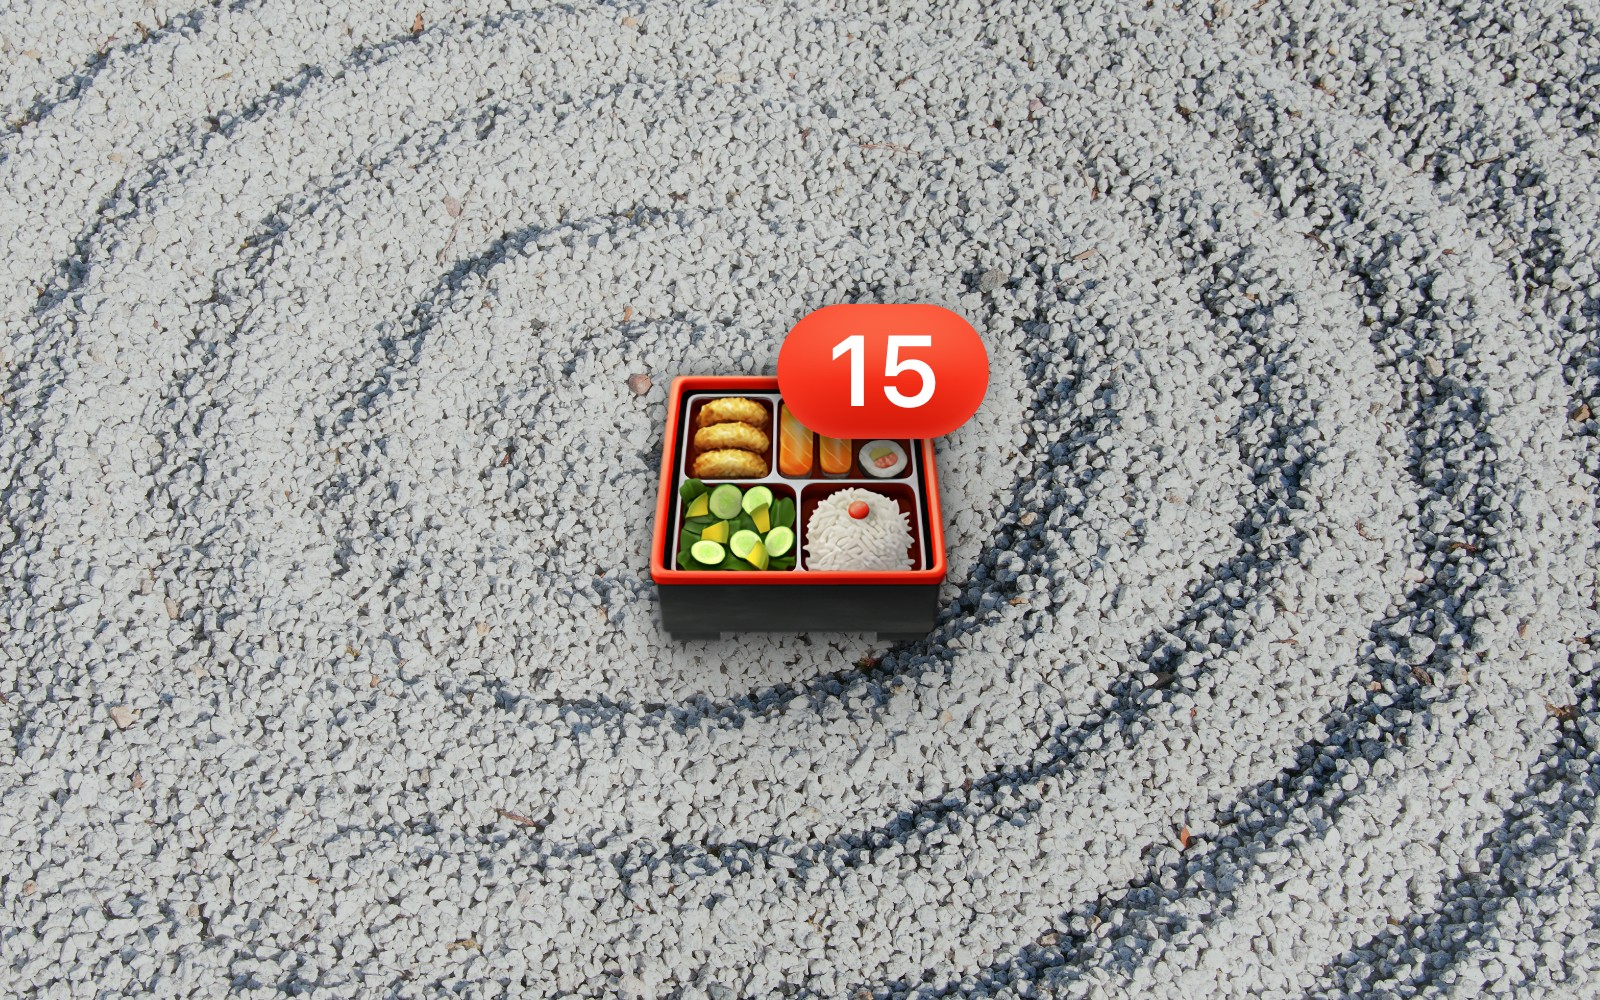 Bento box emoji with number 15 badge resting on a grayscale rock wave